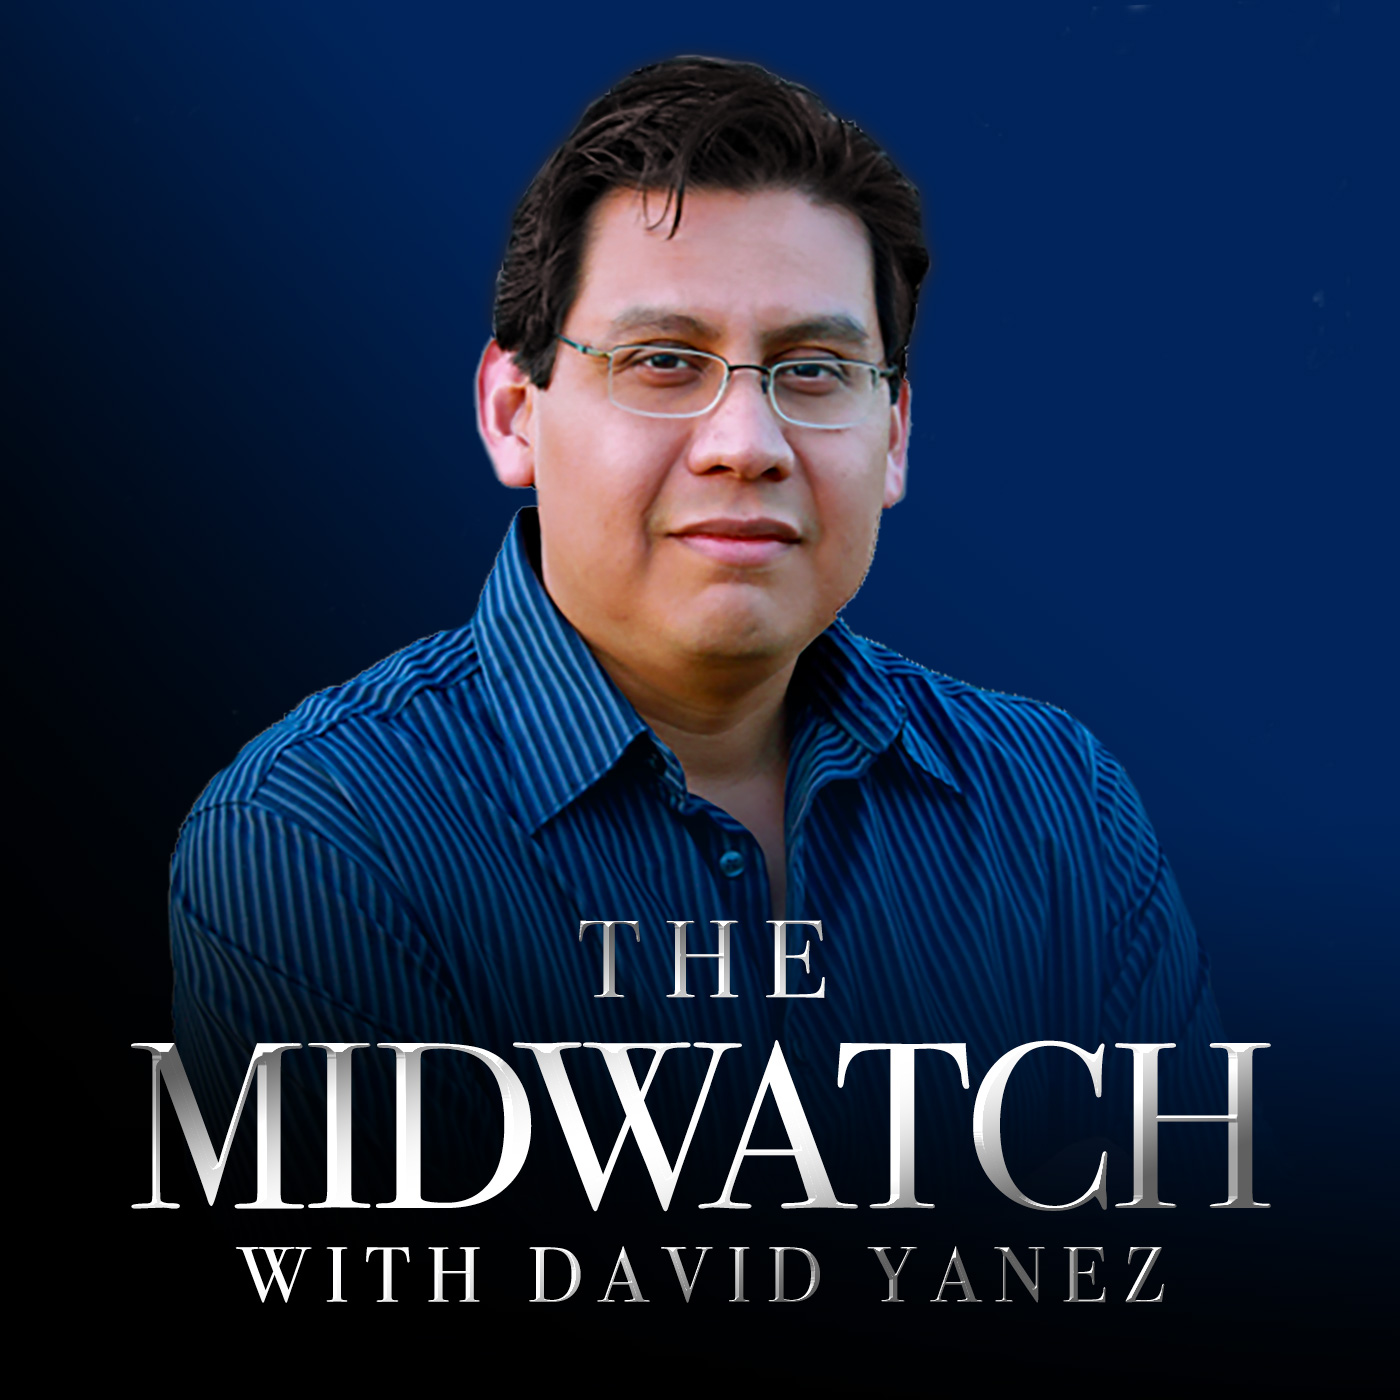 Midwatch with David Yanez logo